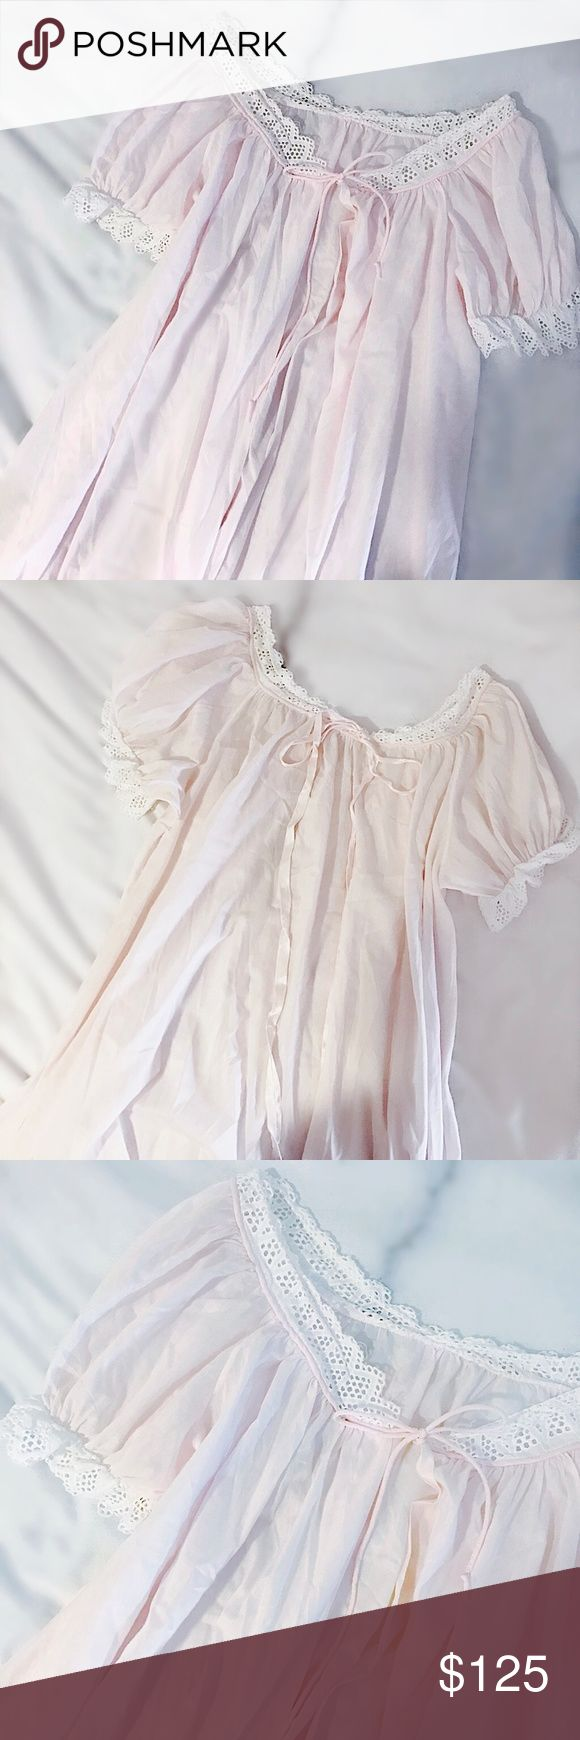 """""""Angel's Breath"""" Sweet Pink Silk Duster Soft, dusty pink vintage duster with antique scalloped lace trim and tiny bow detail to back. Tie front, pleated short sleeves, pleating down the front. Rendered in silk. Pair with an underwire bralette and some cool black slim pants, or layer over a vintage dress. A beautiful, versatile closet addition. Fits anyone size XS-M. 38""""L, 21"""" pit to pit. Retail value $280. -Olivia Cheng Curated Vintage- Vintage Jackets & Coats"""